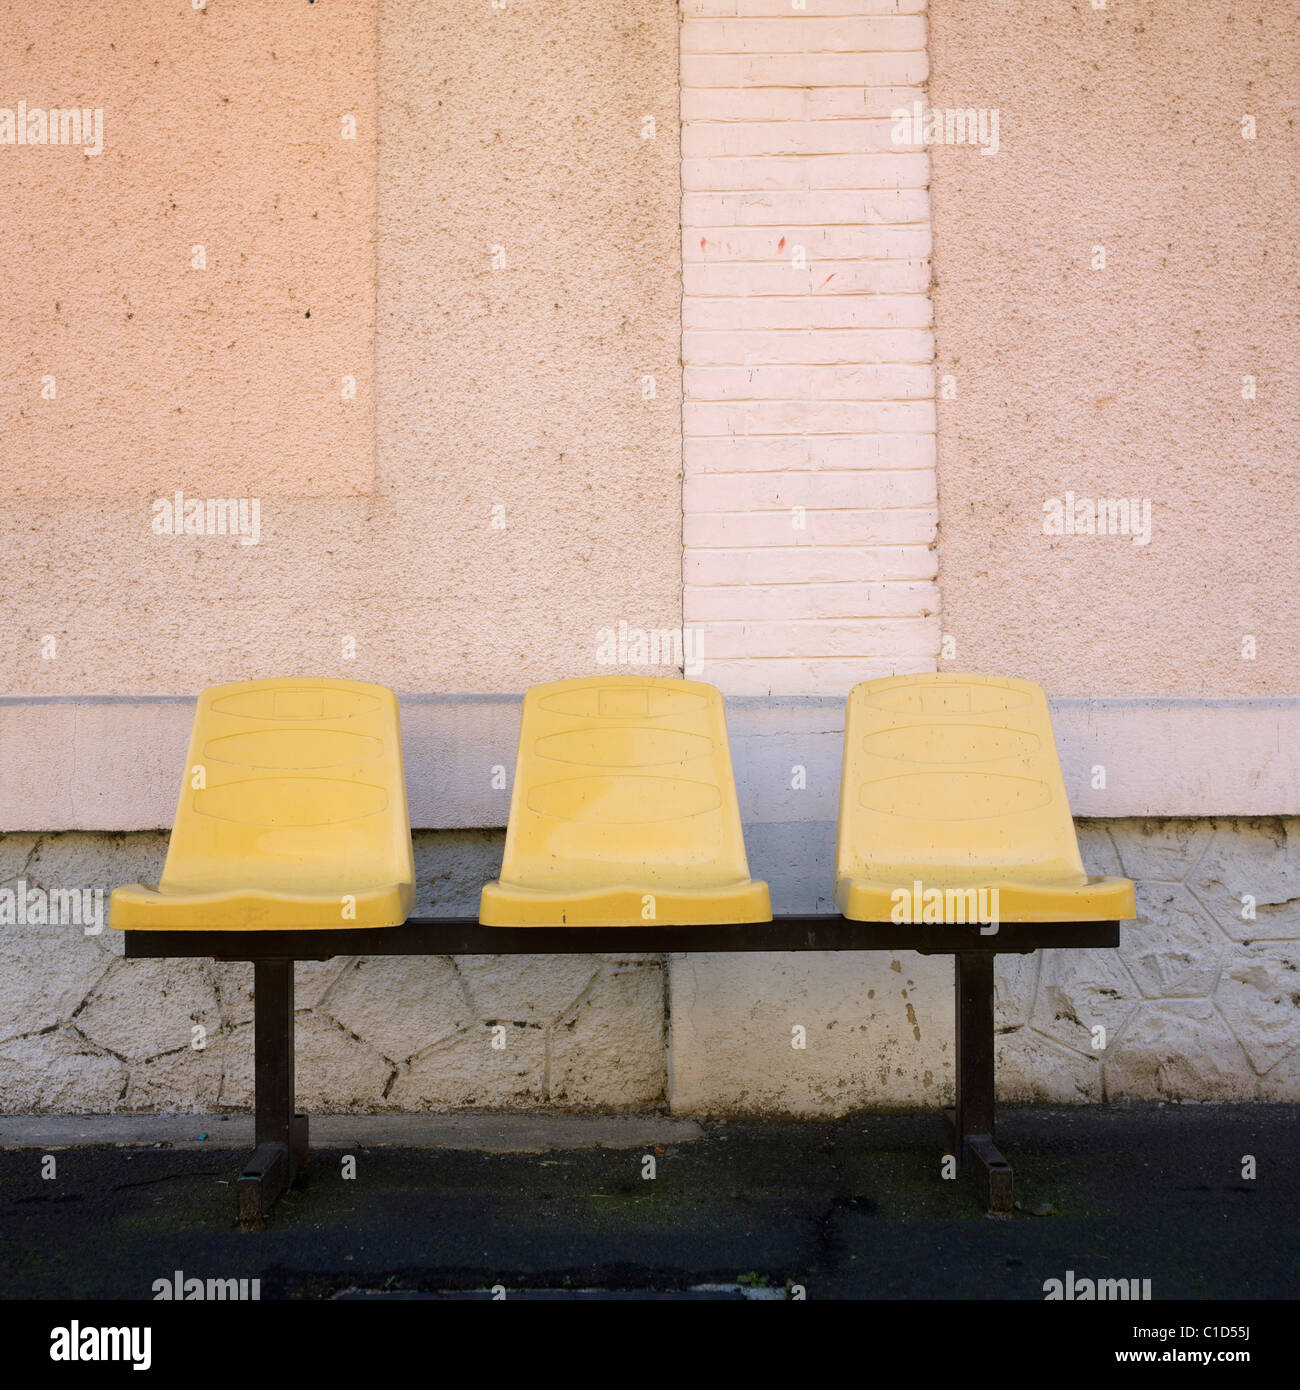 Three seats in a station - Stock Image